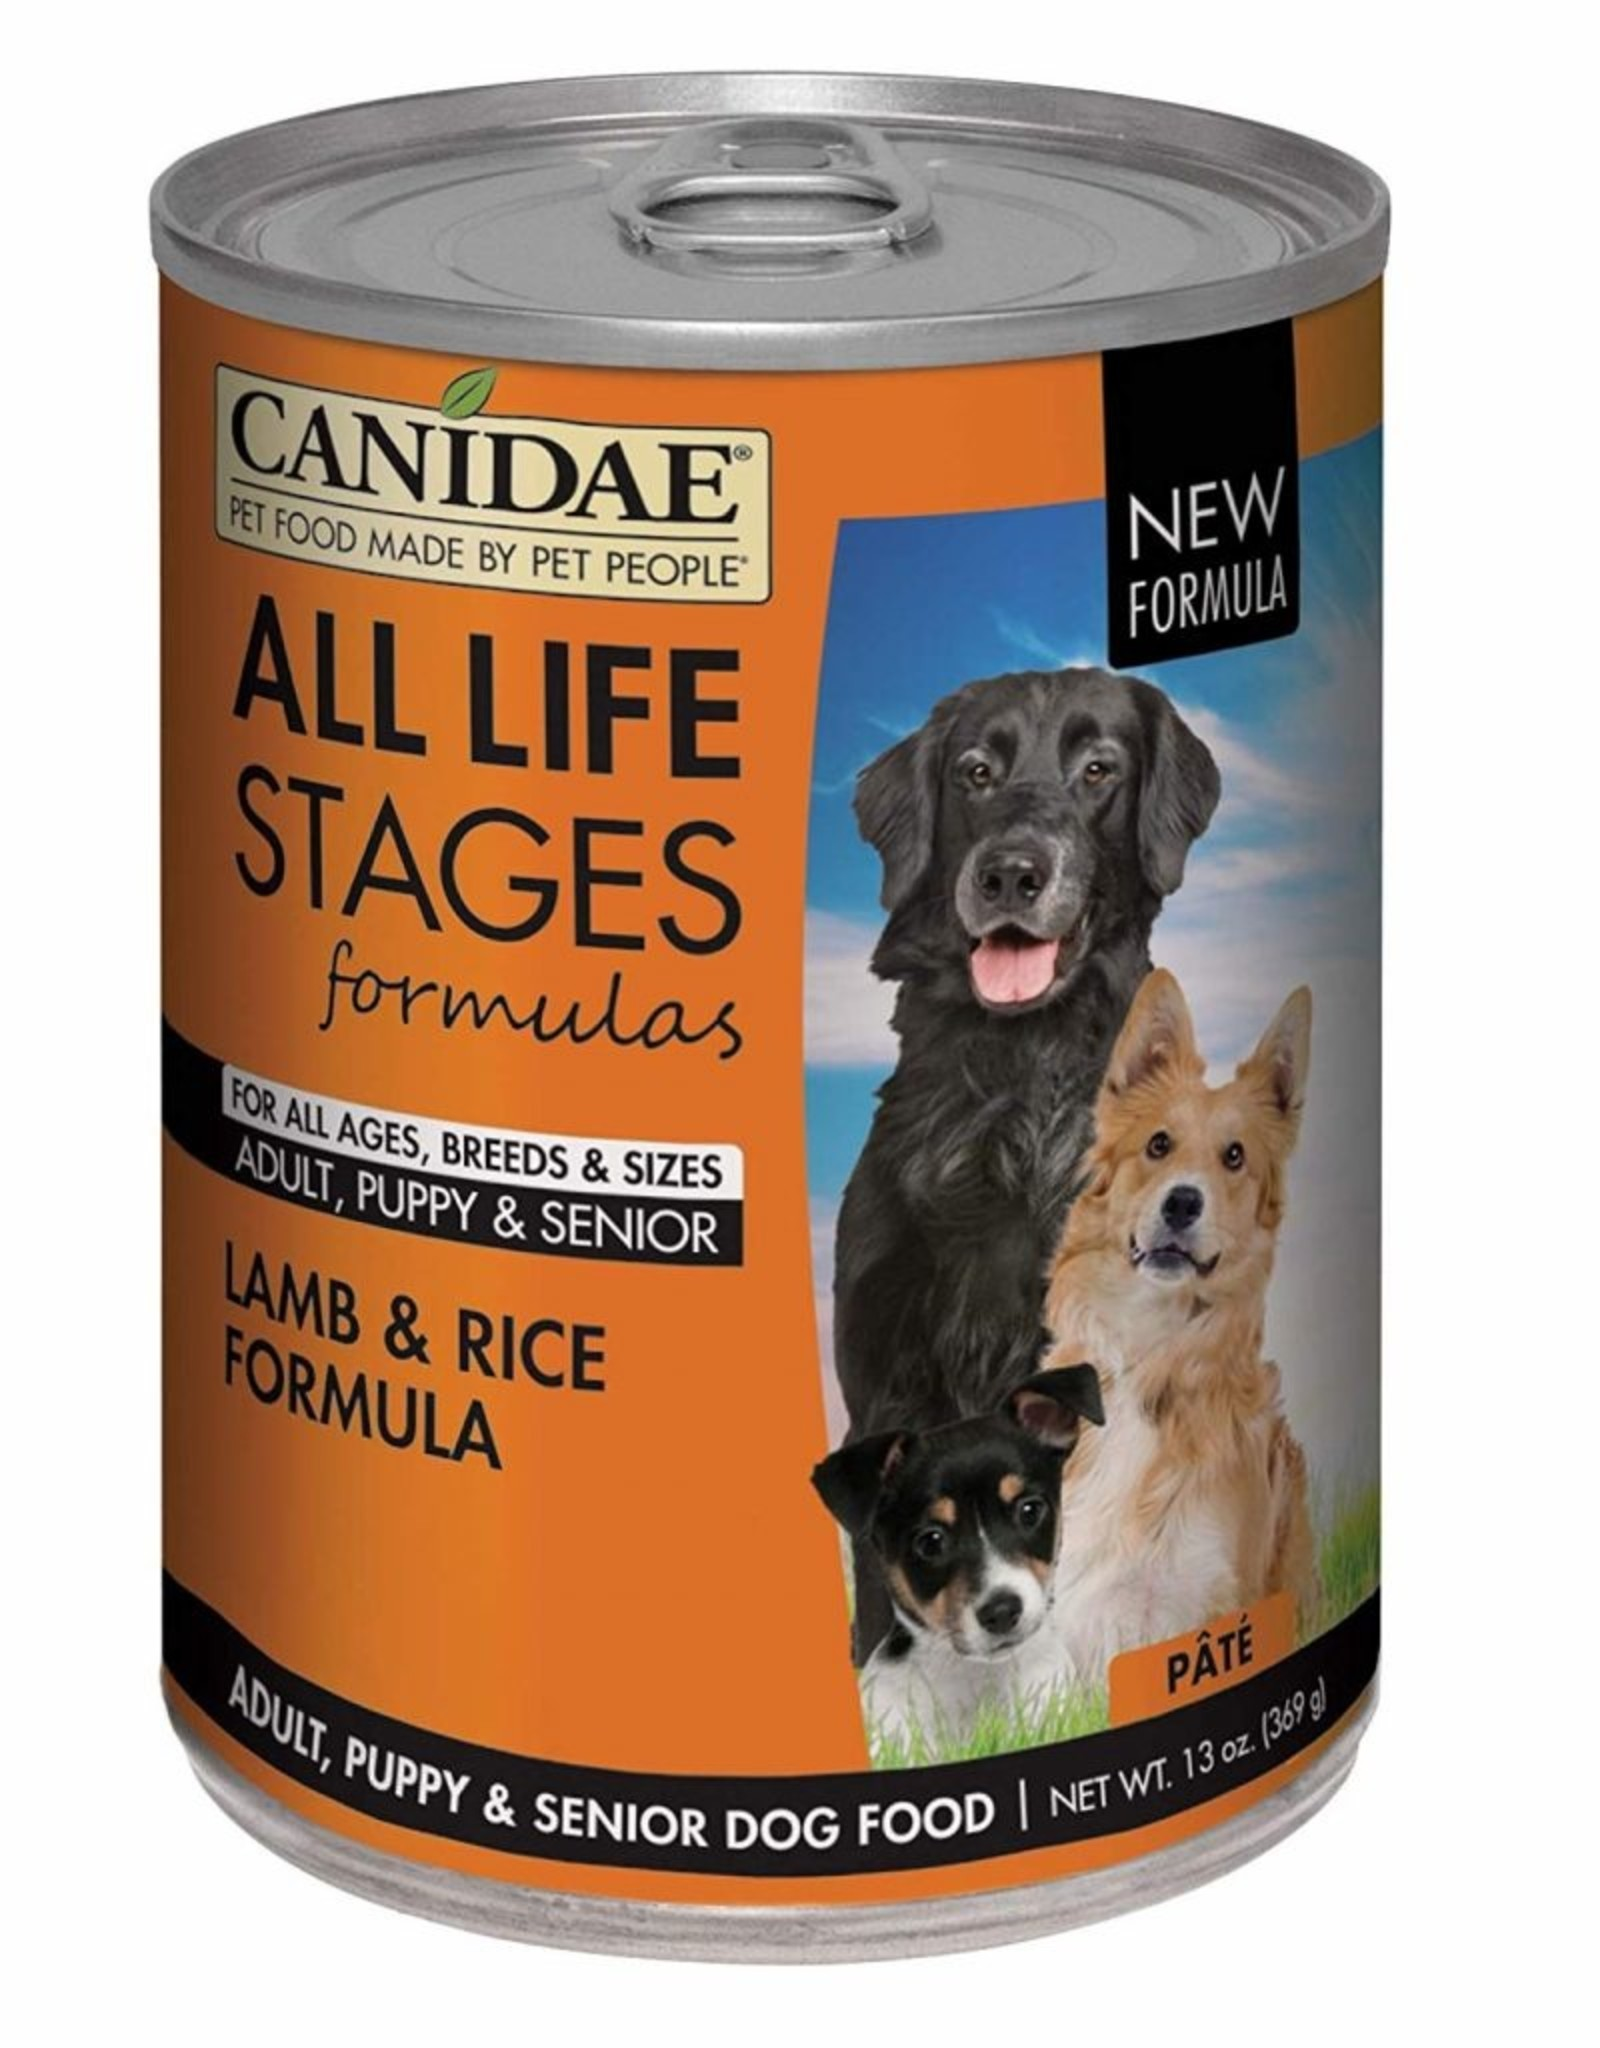 CANIDAE PET FOODS CANIDAE DOG CAN ALL LIFE STAGES LAMB & RICE 13.2OZ CASE OF 12